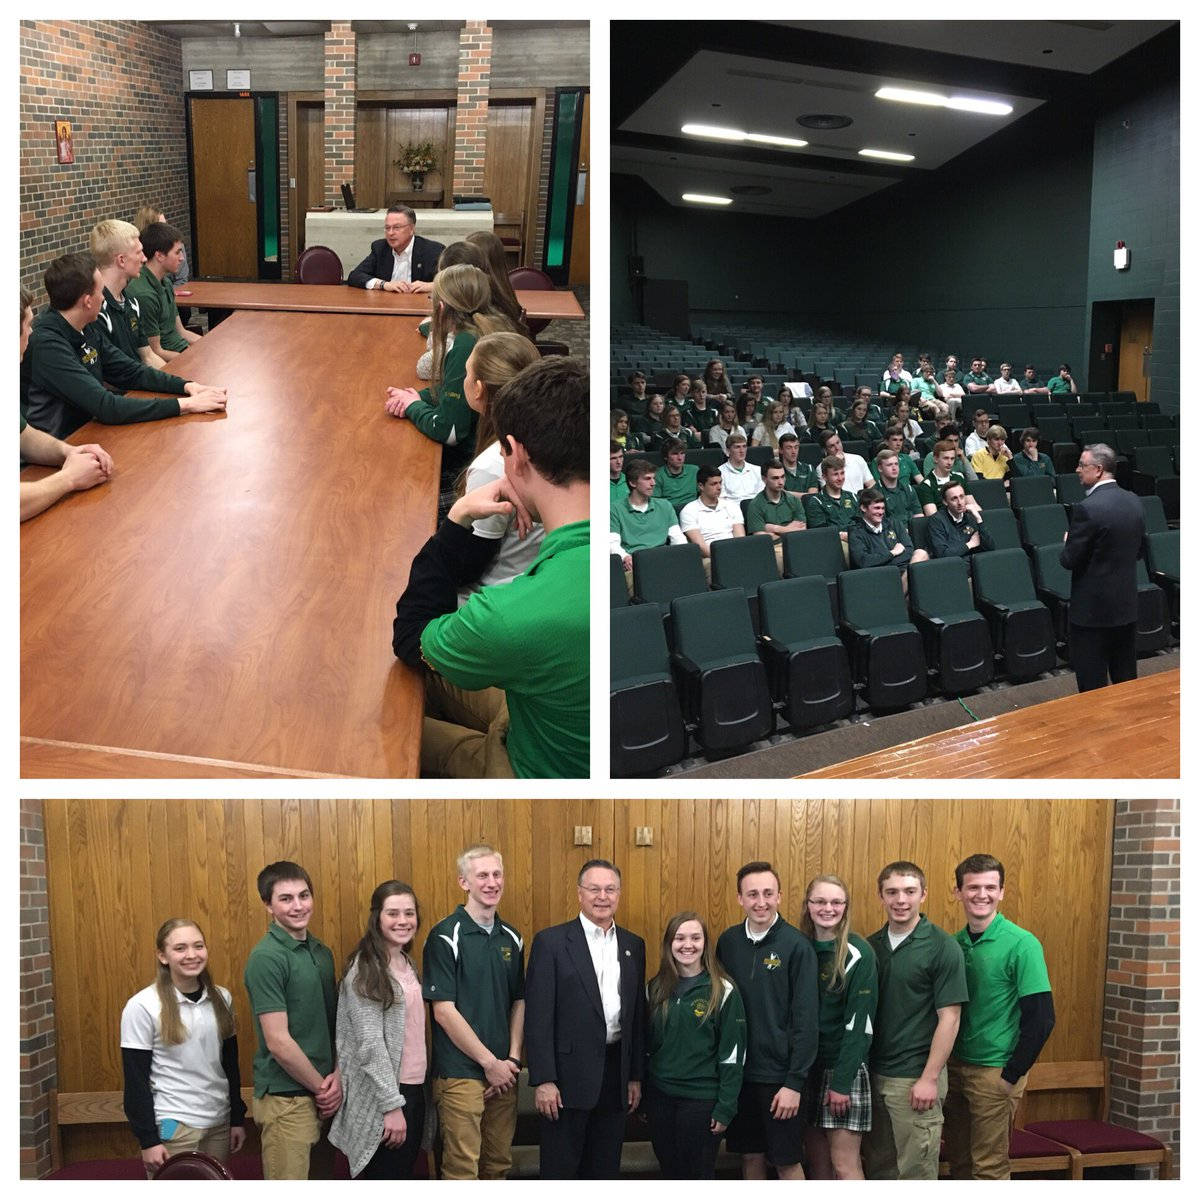 Before a Q&A session with the  gov@BeckmanCatholict class, I met with the science club to learn about their recent award as a Top Research School in IA. 2 students, Megan Ertl and Mason Burlage, will present at DoD funded symposiums in Baltimore and Boston- keep up the good work!